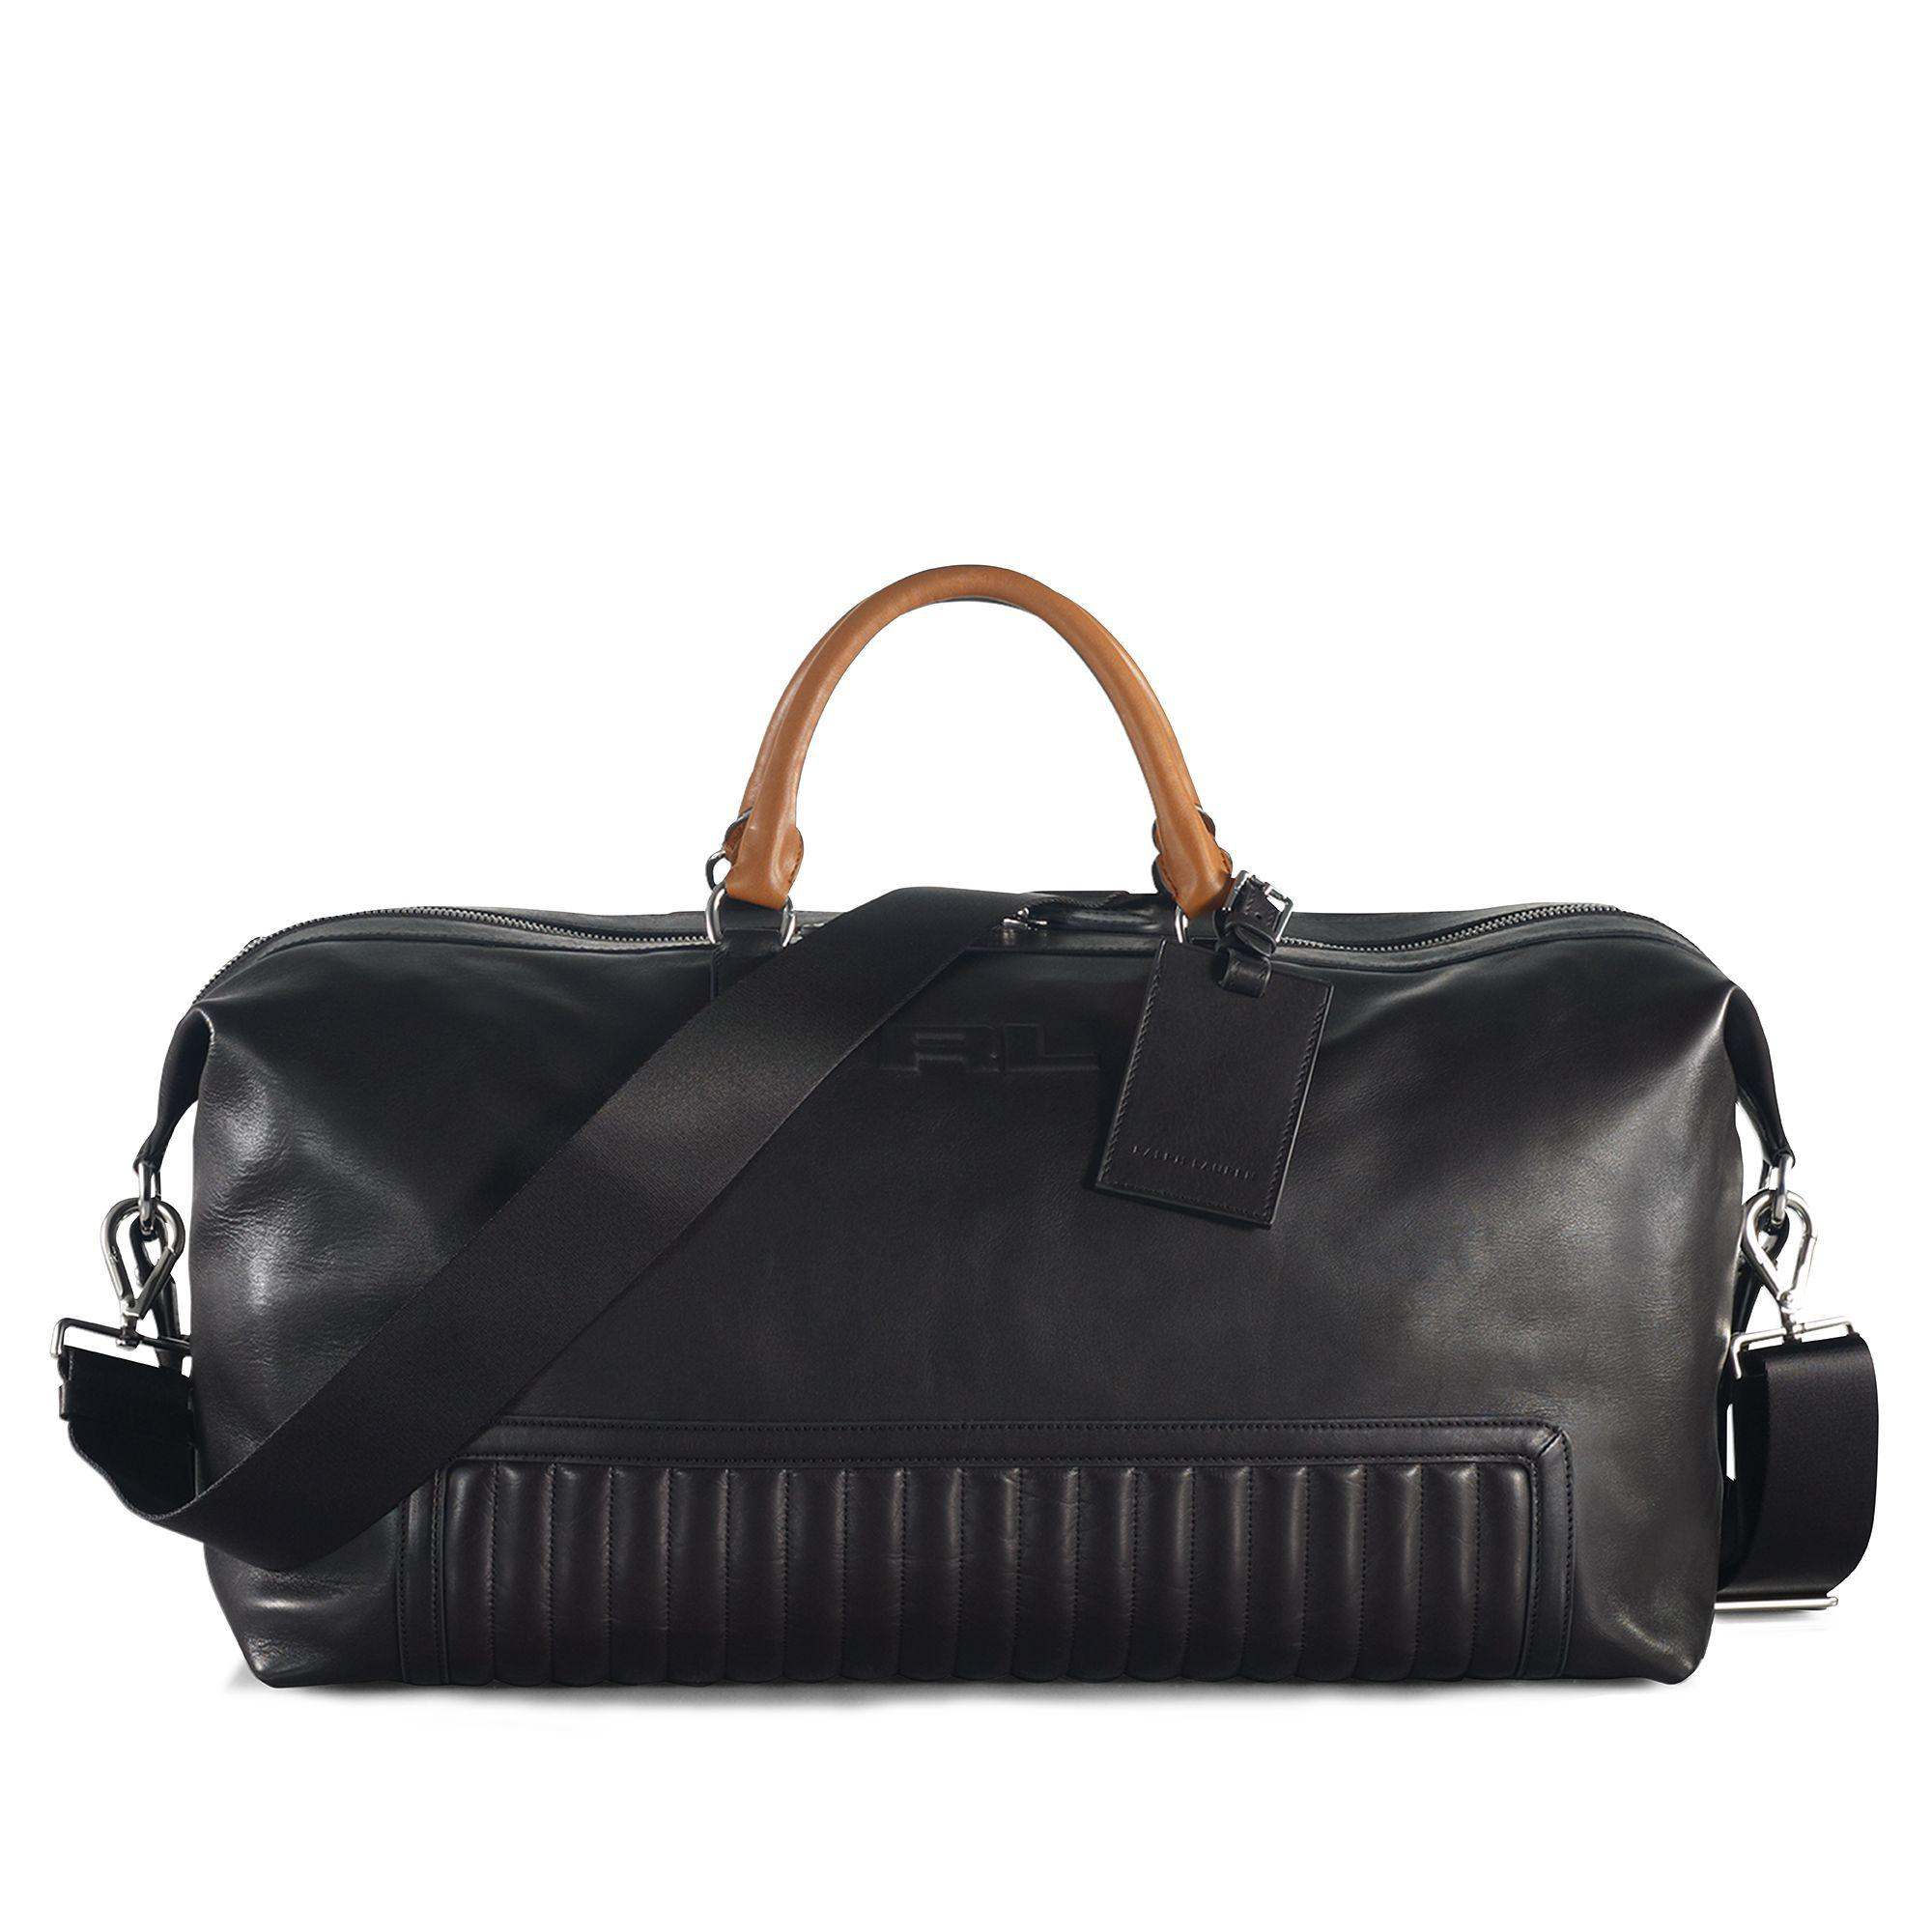 a027b3ac27 Ralph Lauren Quilted Leather Duffel Bag in Black for Men - Lyst